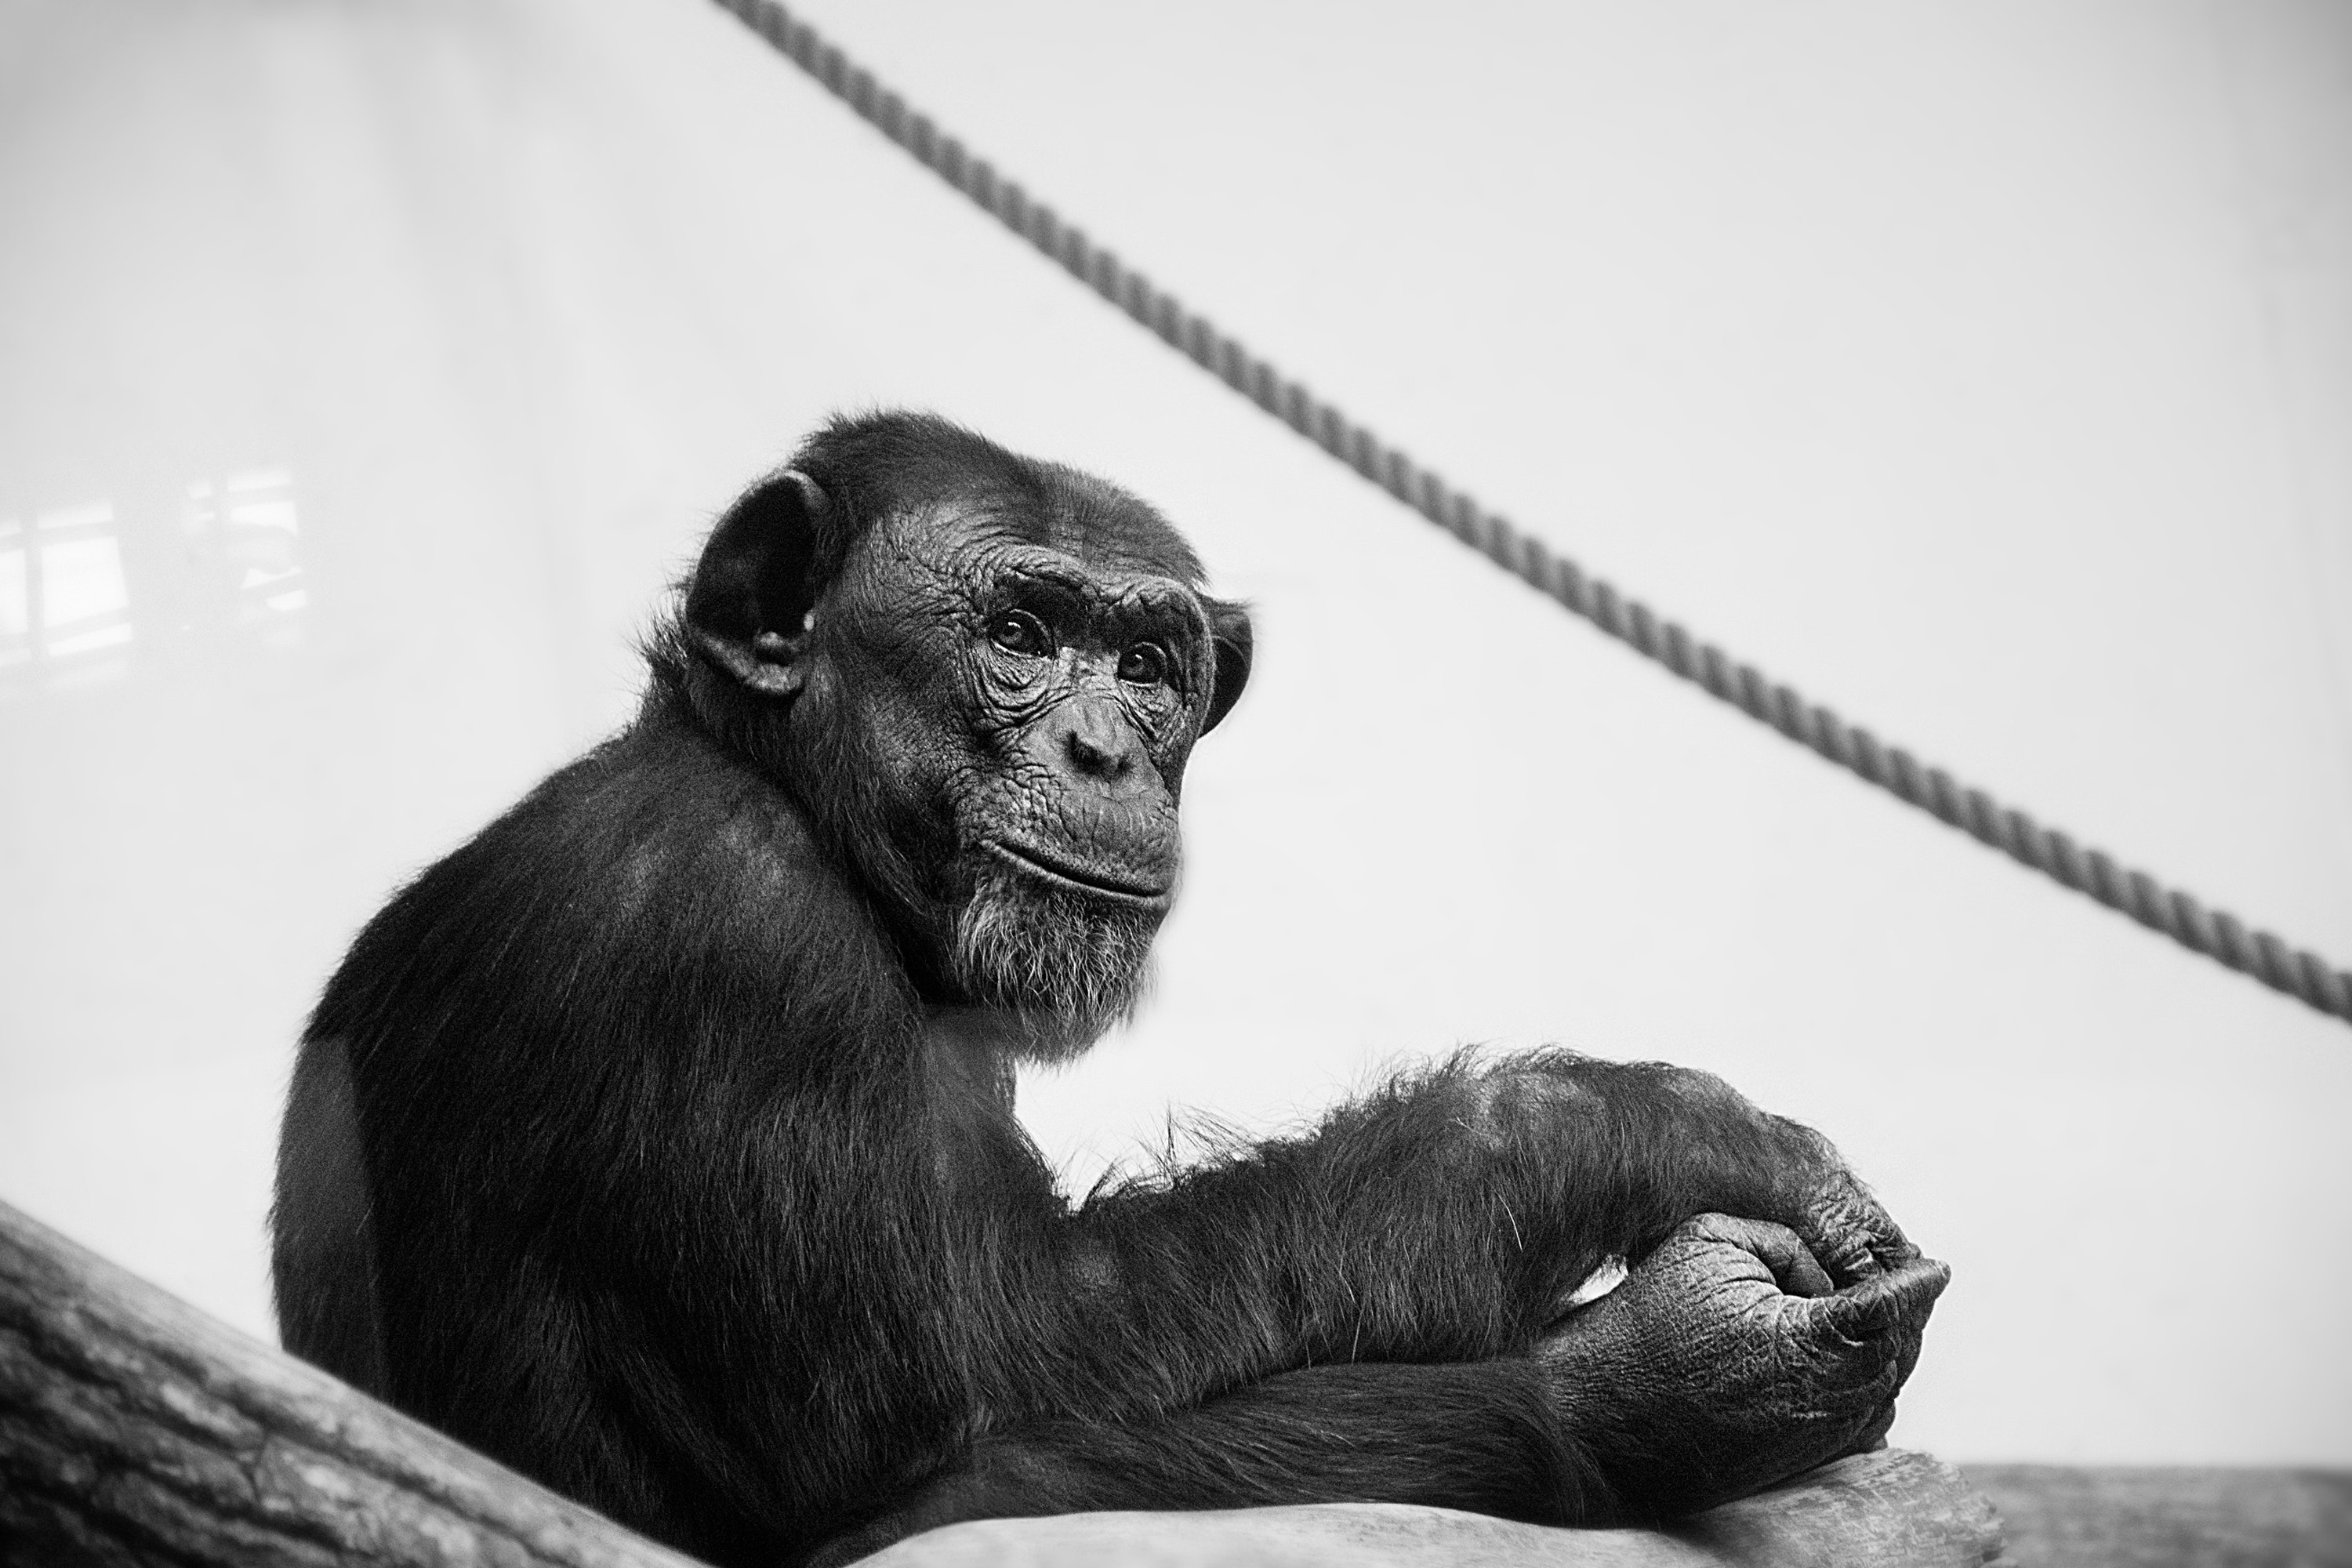 A grayscale photo of a chimpanzee